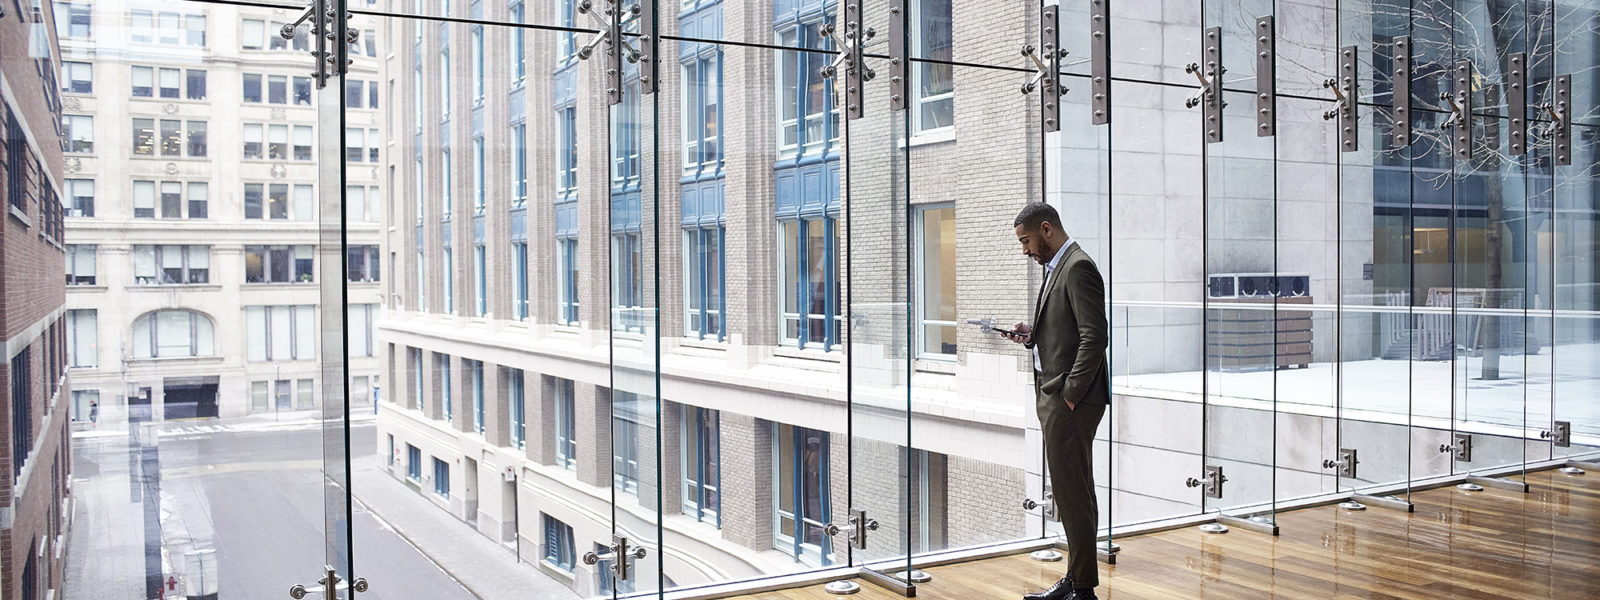 Image of a worker checking his phone while looking out a window over a cityscape.